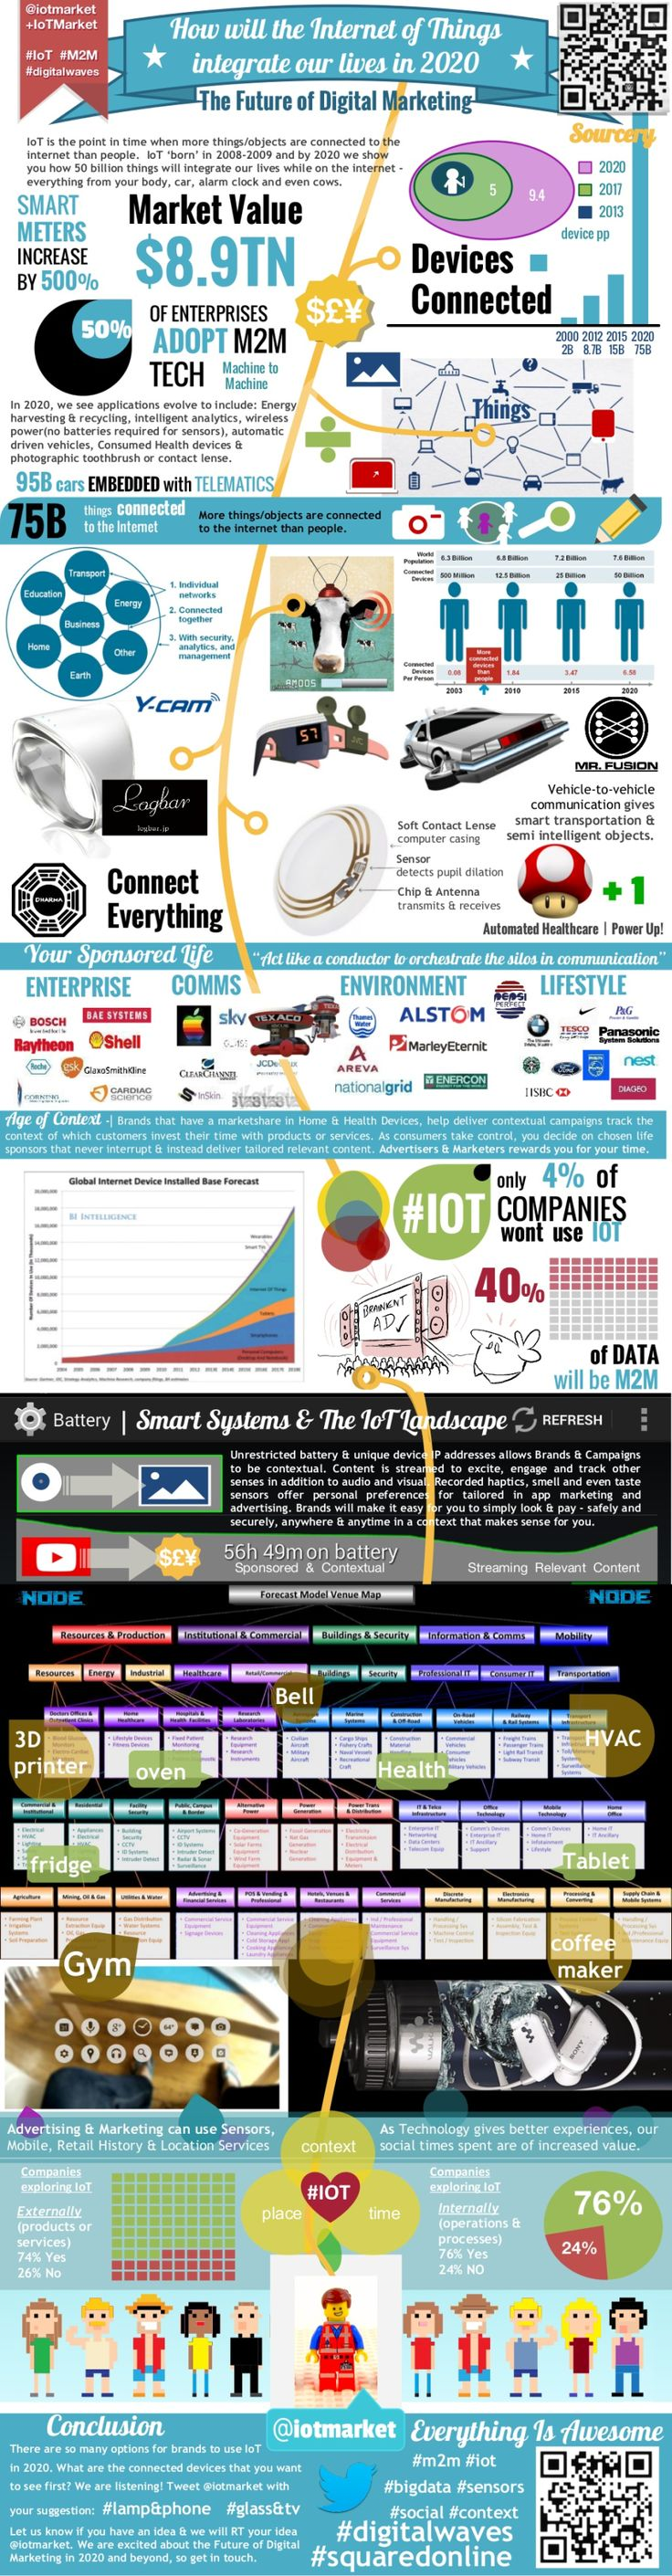 How will the Internet of Things integrate our lives in 2020? #Infographic #Inte …   – Latest Infographics